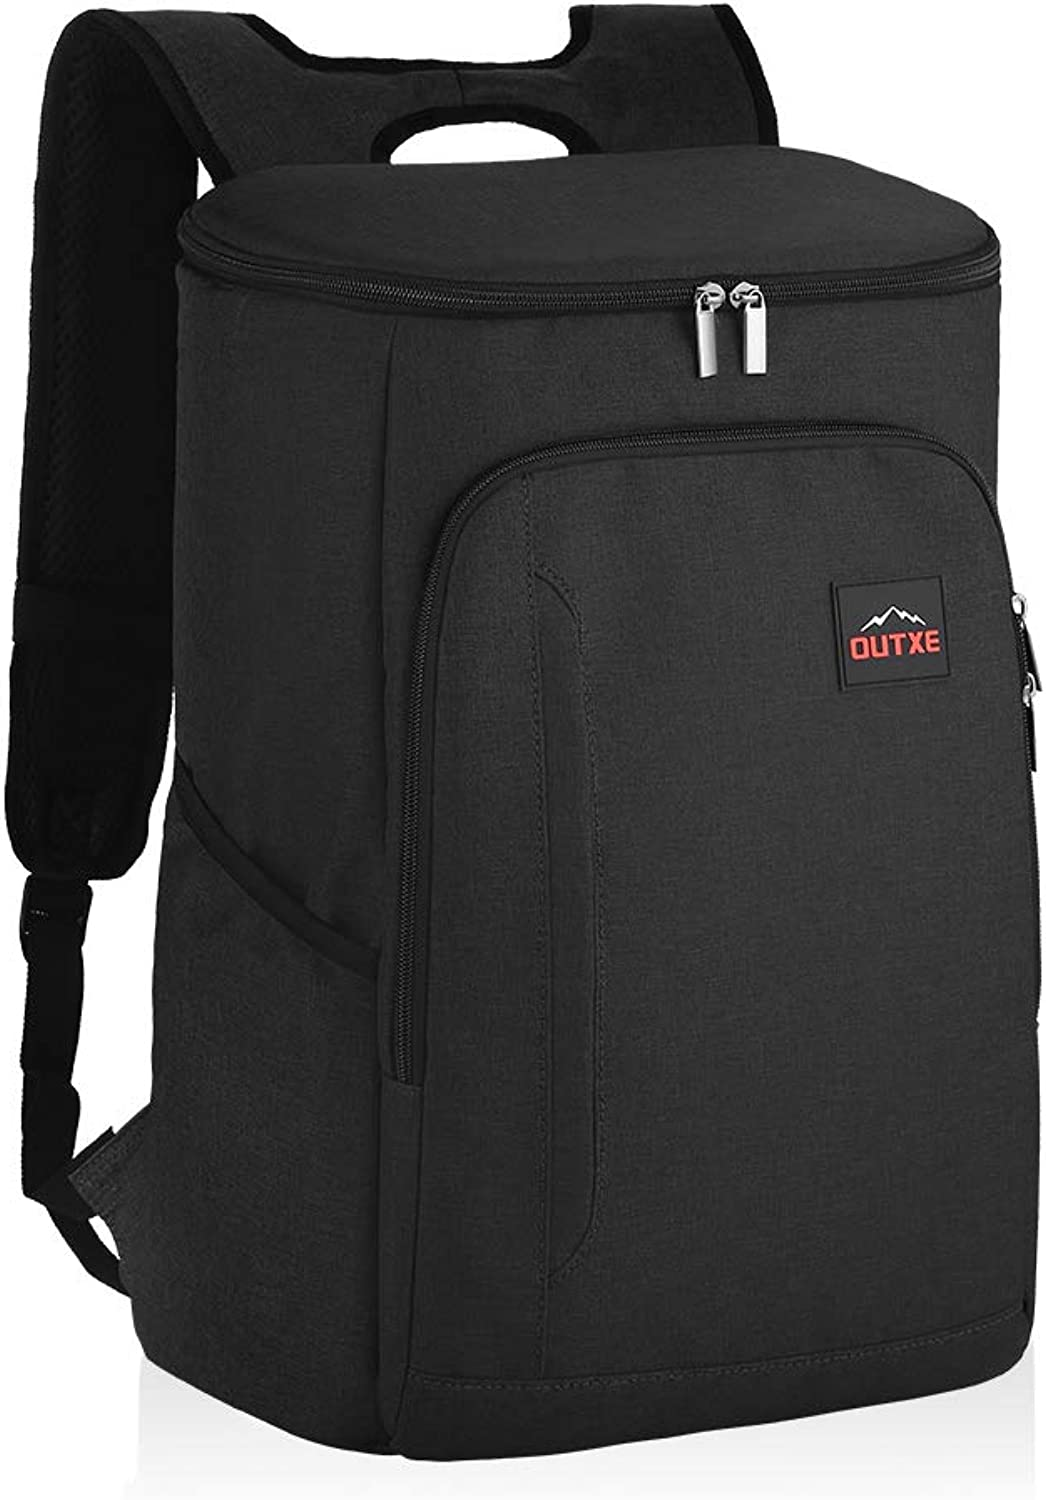 OUTXE Cooler Backpack Insulated 28L Cooler Bag for 14  laptops Lunch Backpack